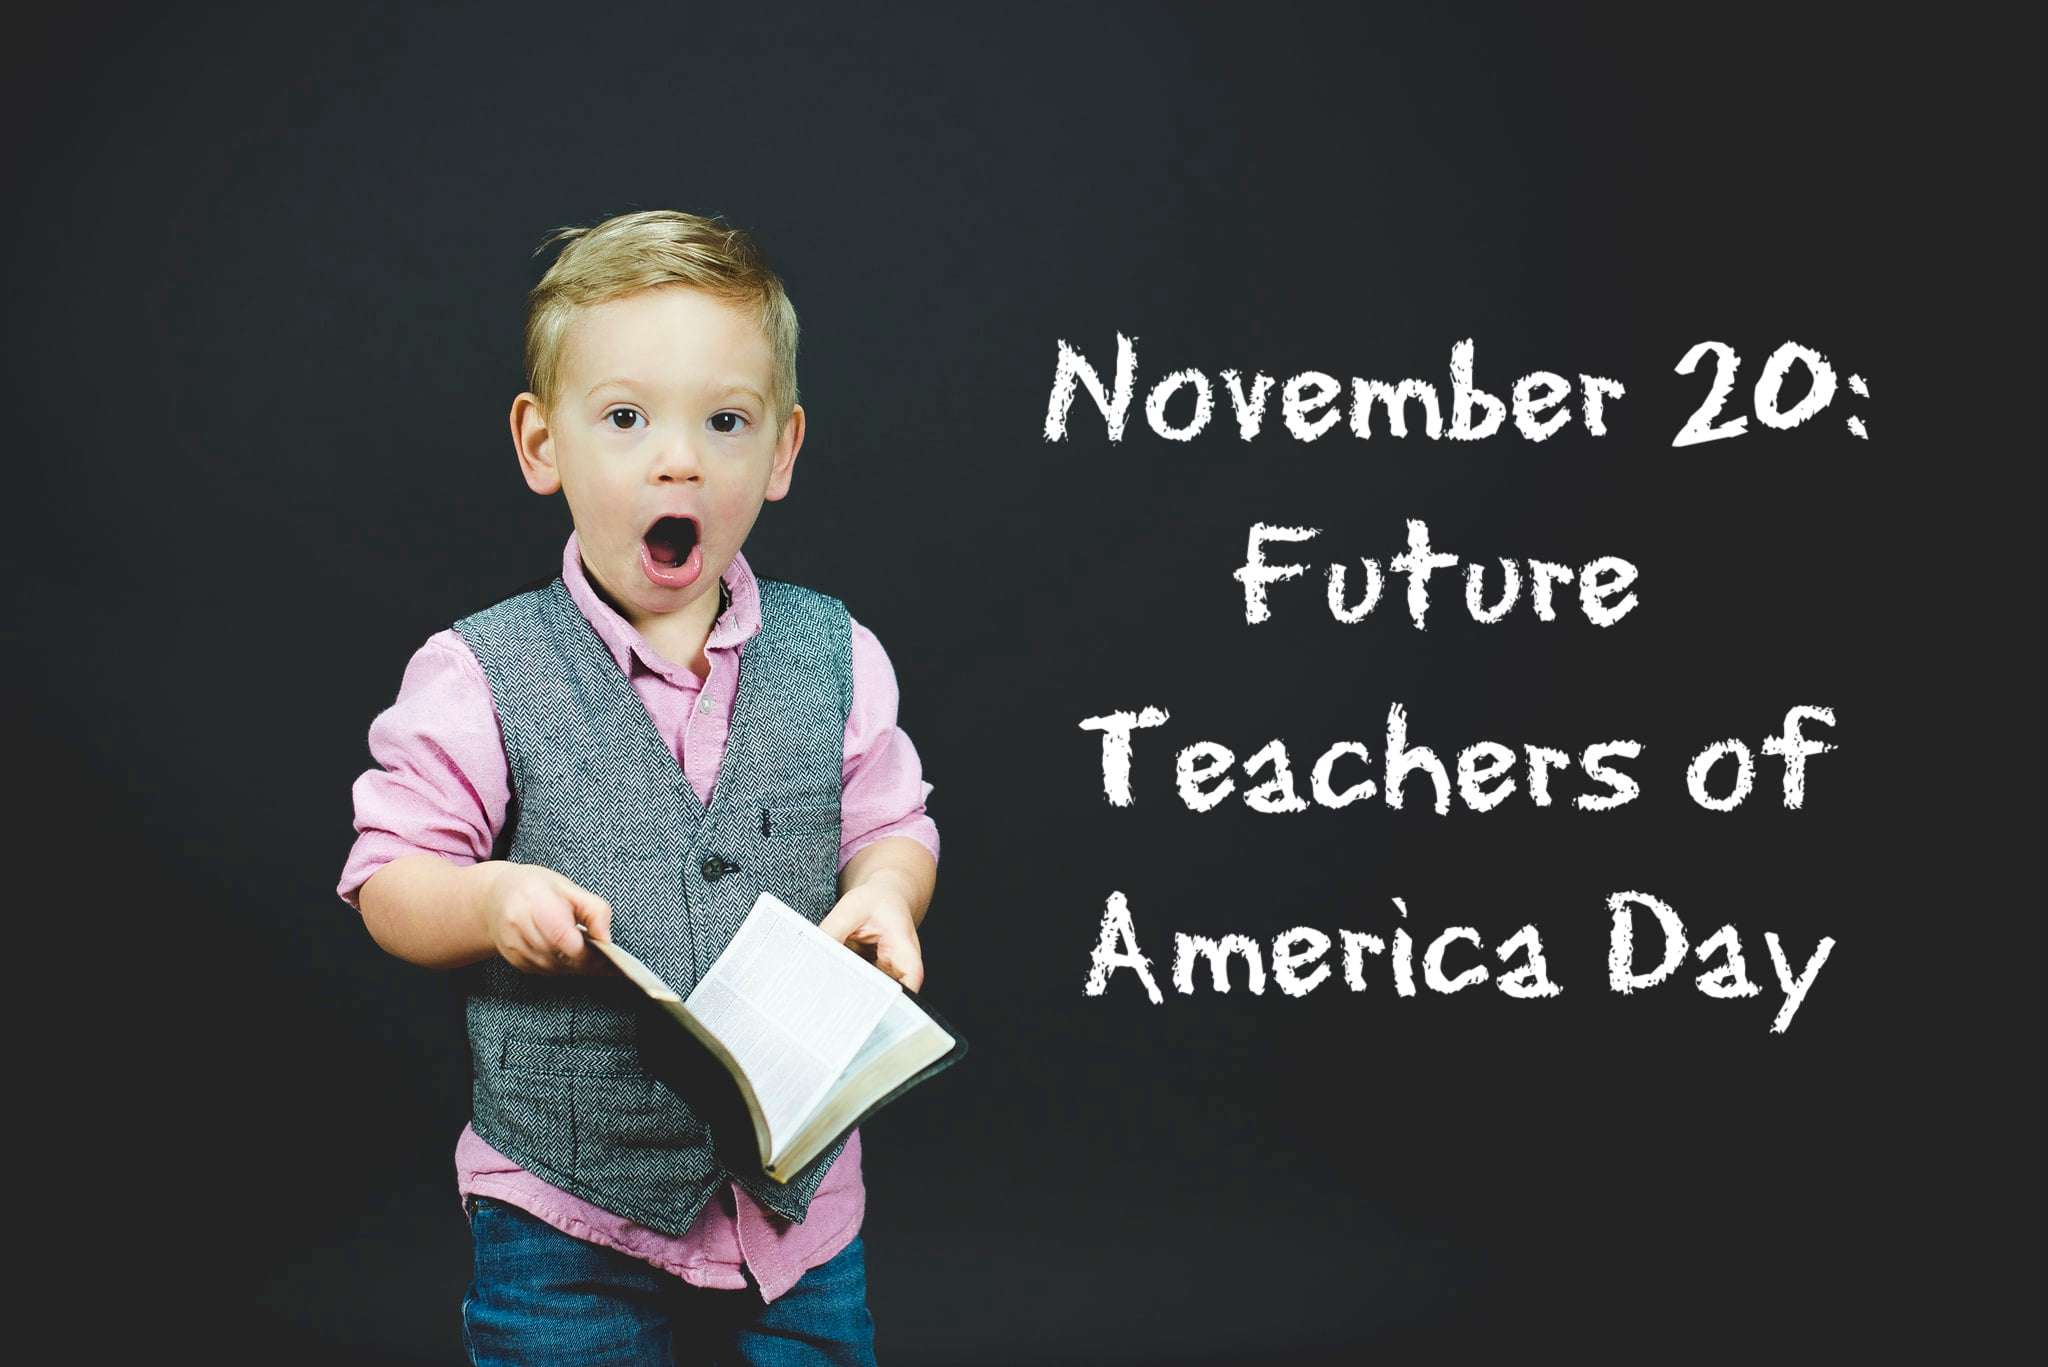 Future Teachers of America Day Wishes Pics